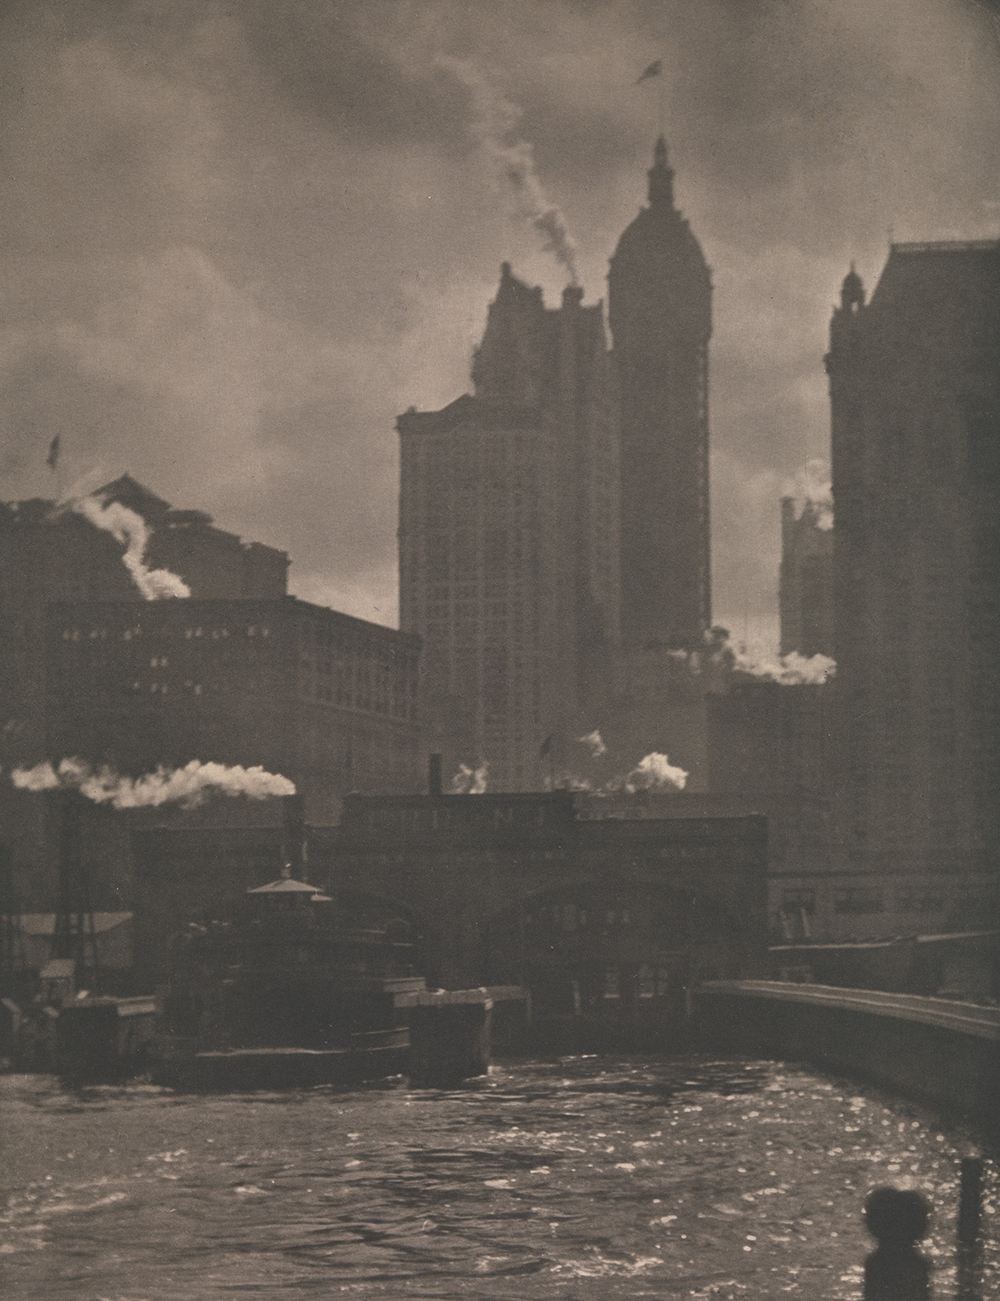 """The City of Ambitions,"" 1910. Photograph by Alfred Stieglitz. The Metropolitan Museum of Art, Alfred Stieglitz Collection, 1949."